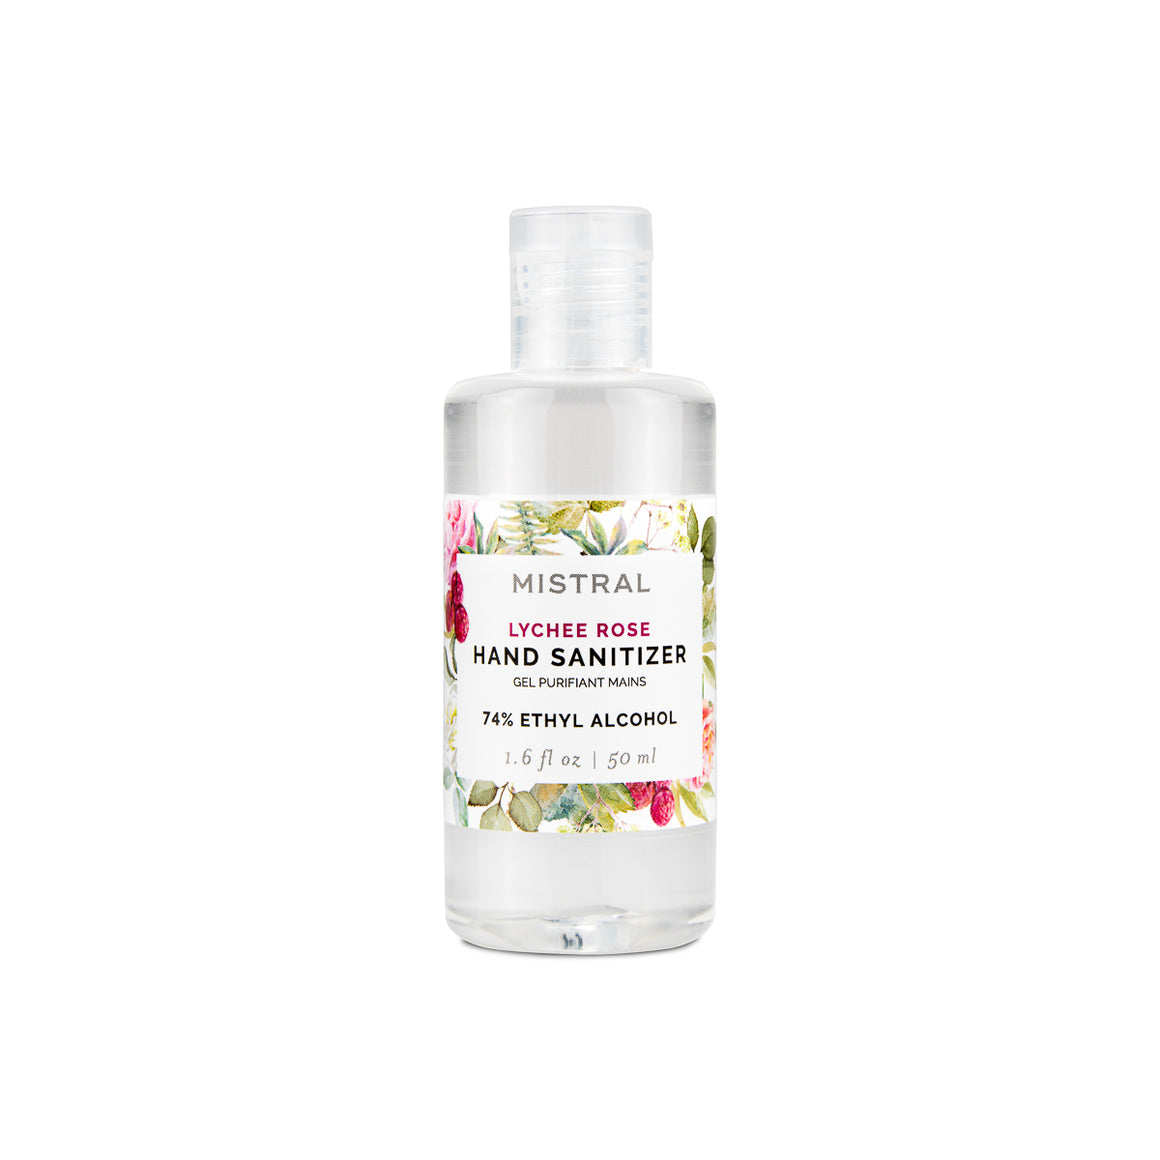 LYCHEE ROSE HAND SANITIZER